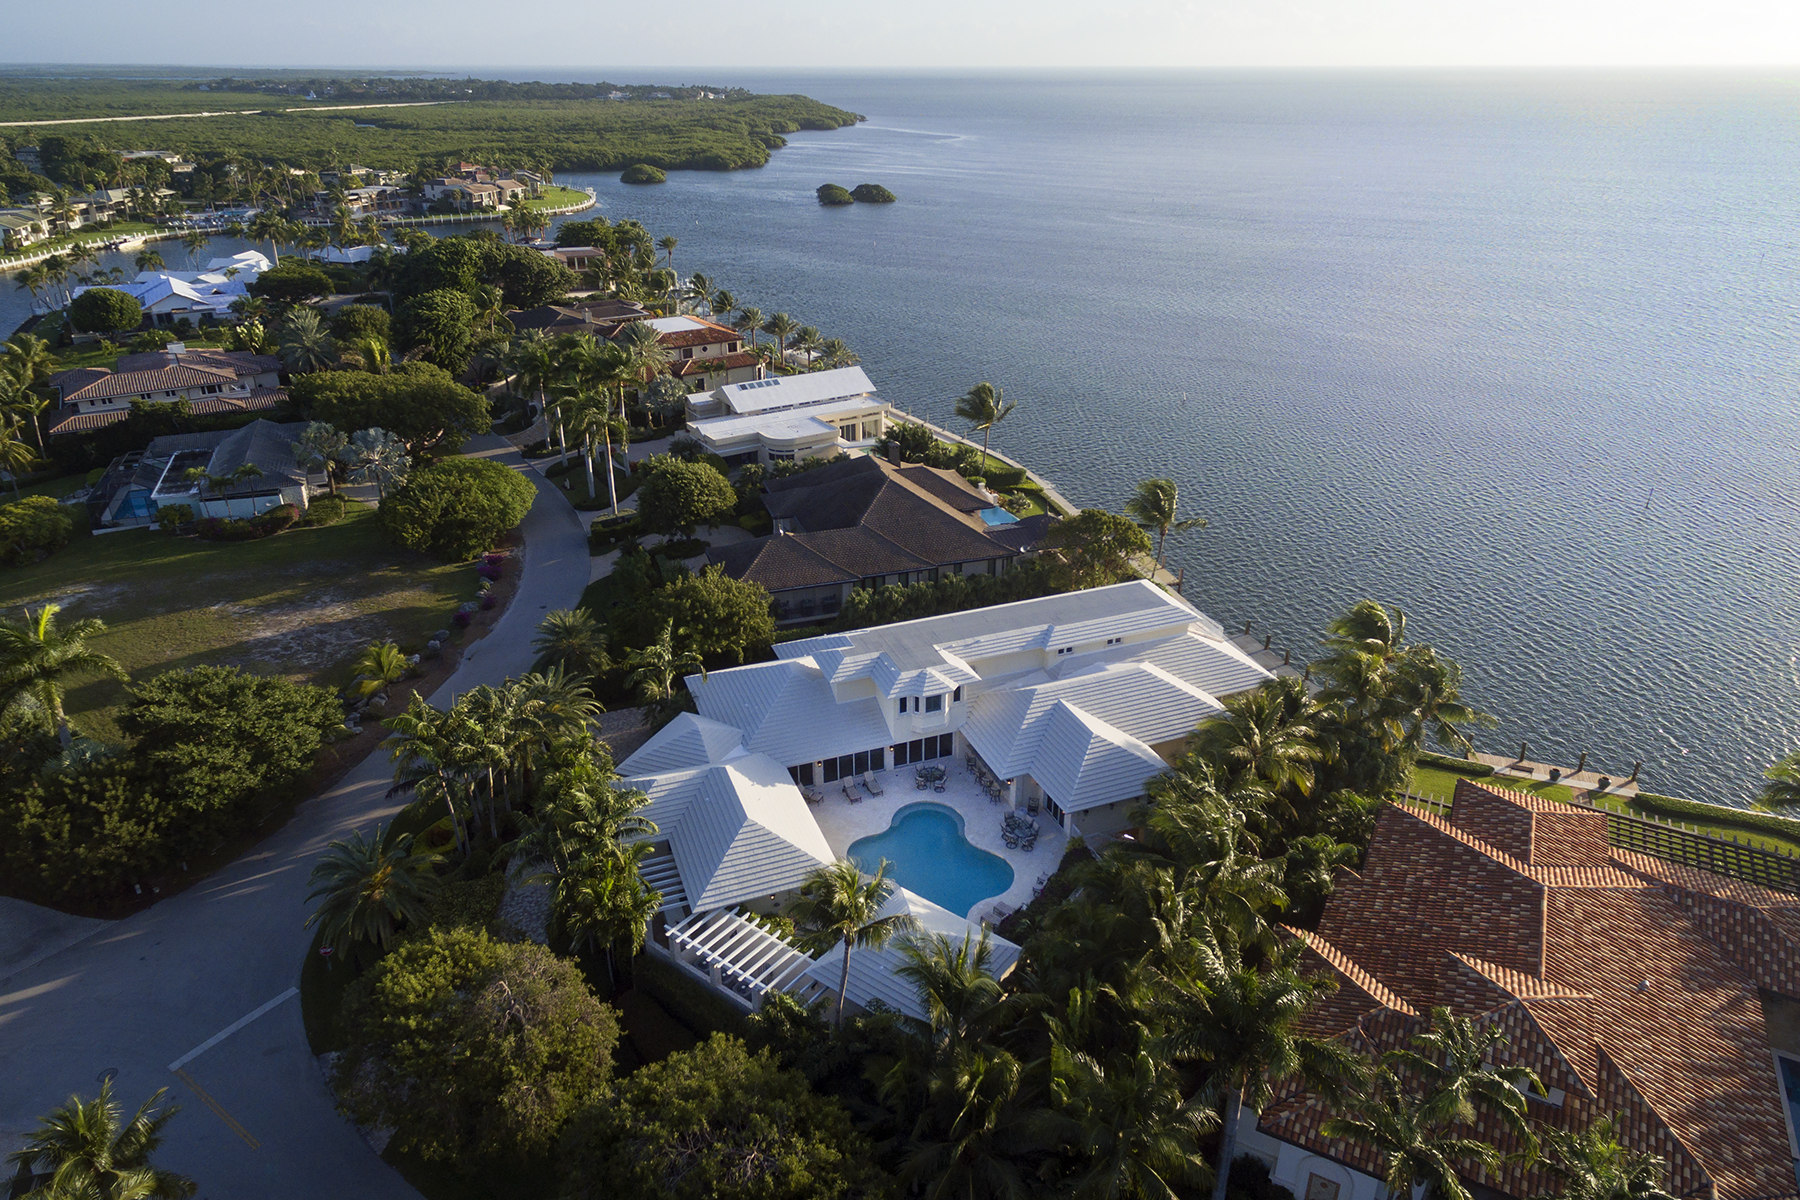 Casa Unifamiliar por un Venta en Extraordinary Oceanfront Home at Ocean Reef 24 Angelfish Cay Drive Ocean Reef Community, Key Largo, Florida, 33037 Estados Unidos